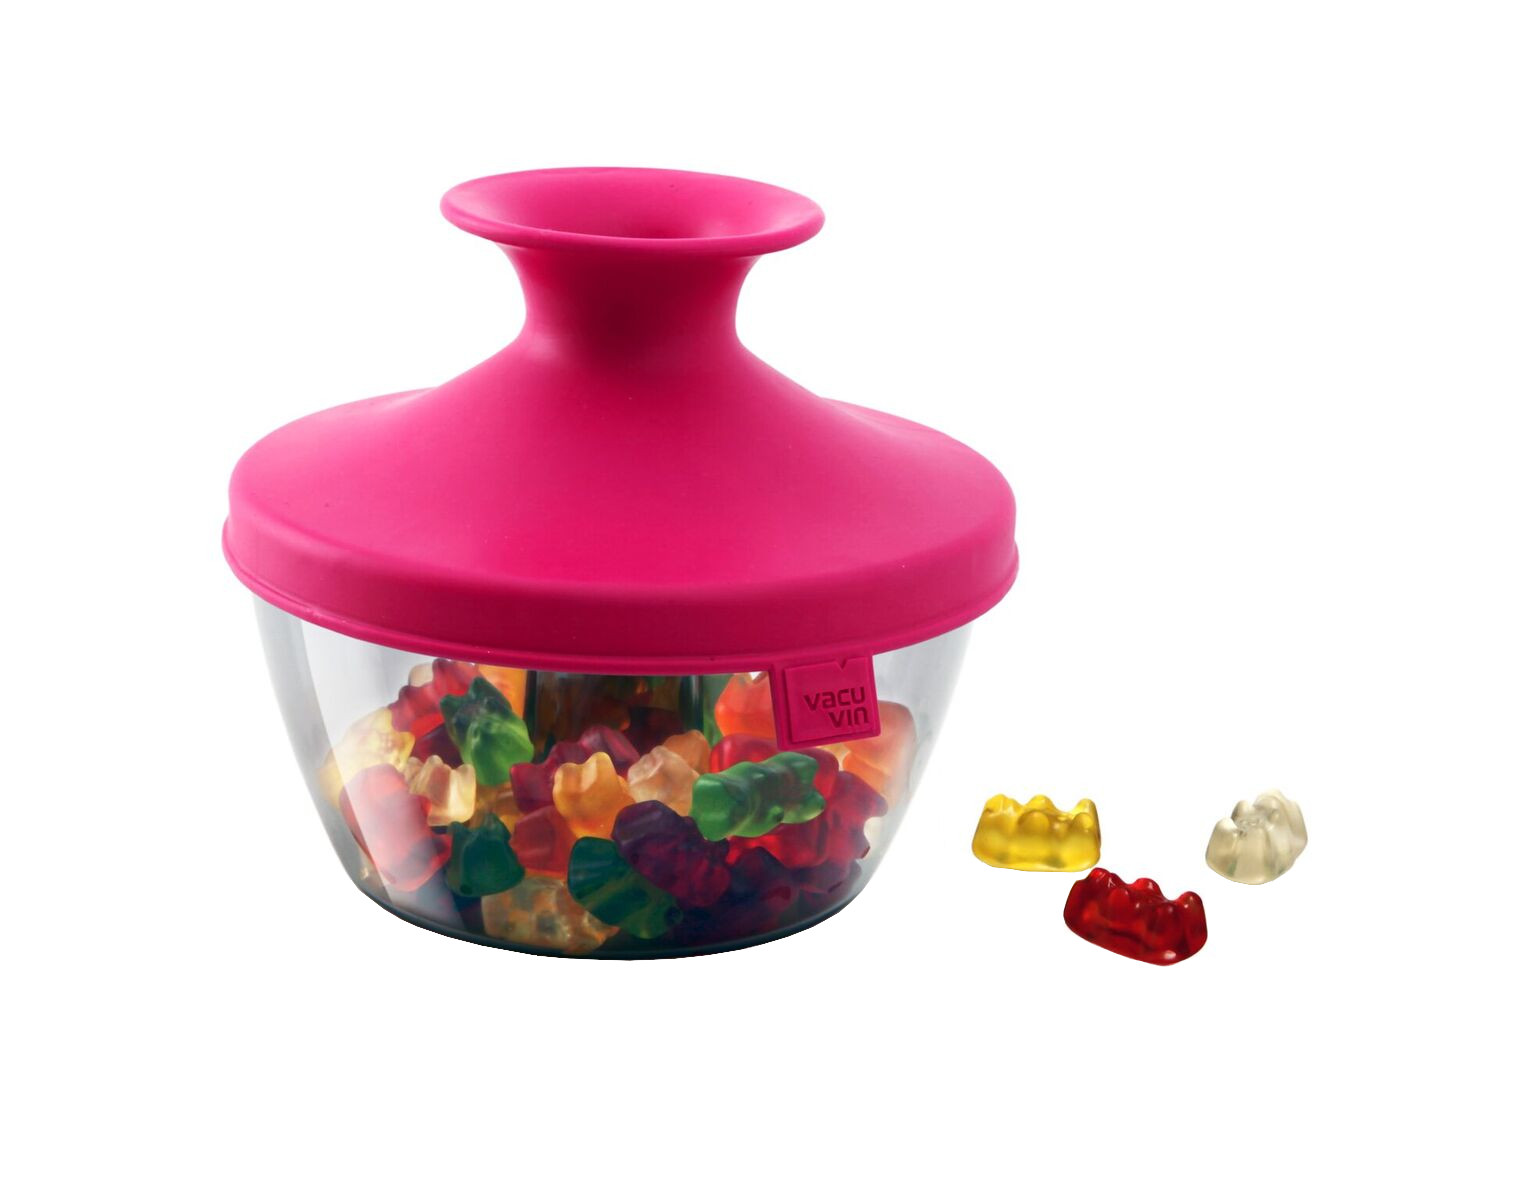 Tomorrow's Kitchen Pink 17 Ounce PopSome Nuts & Candy Bowl with Sleeve